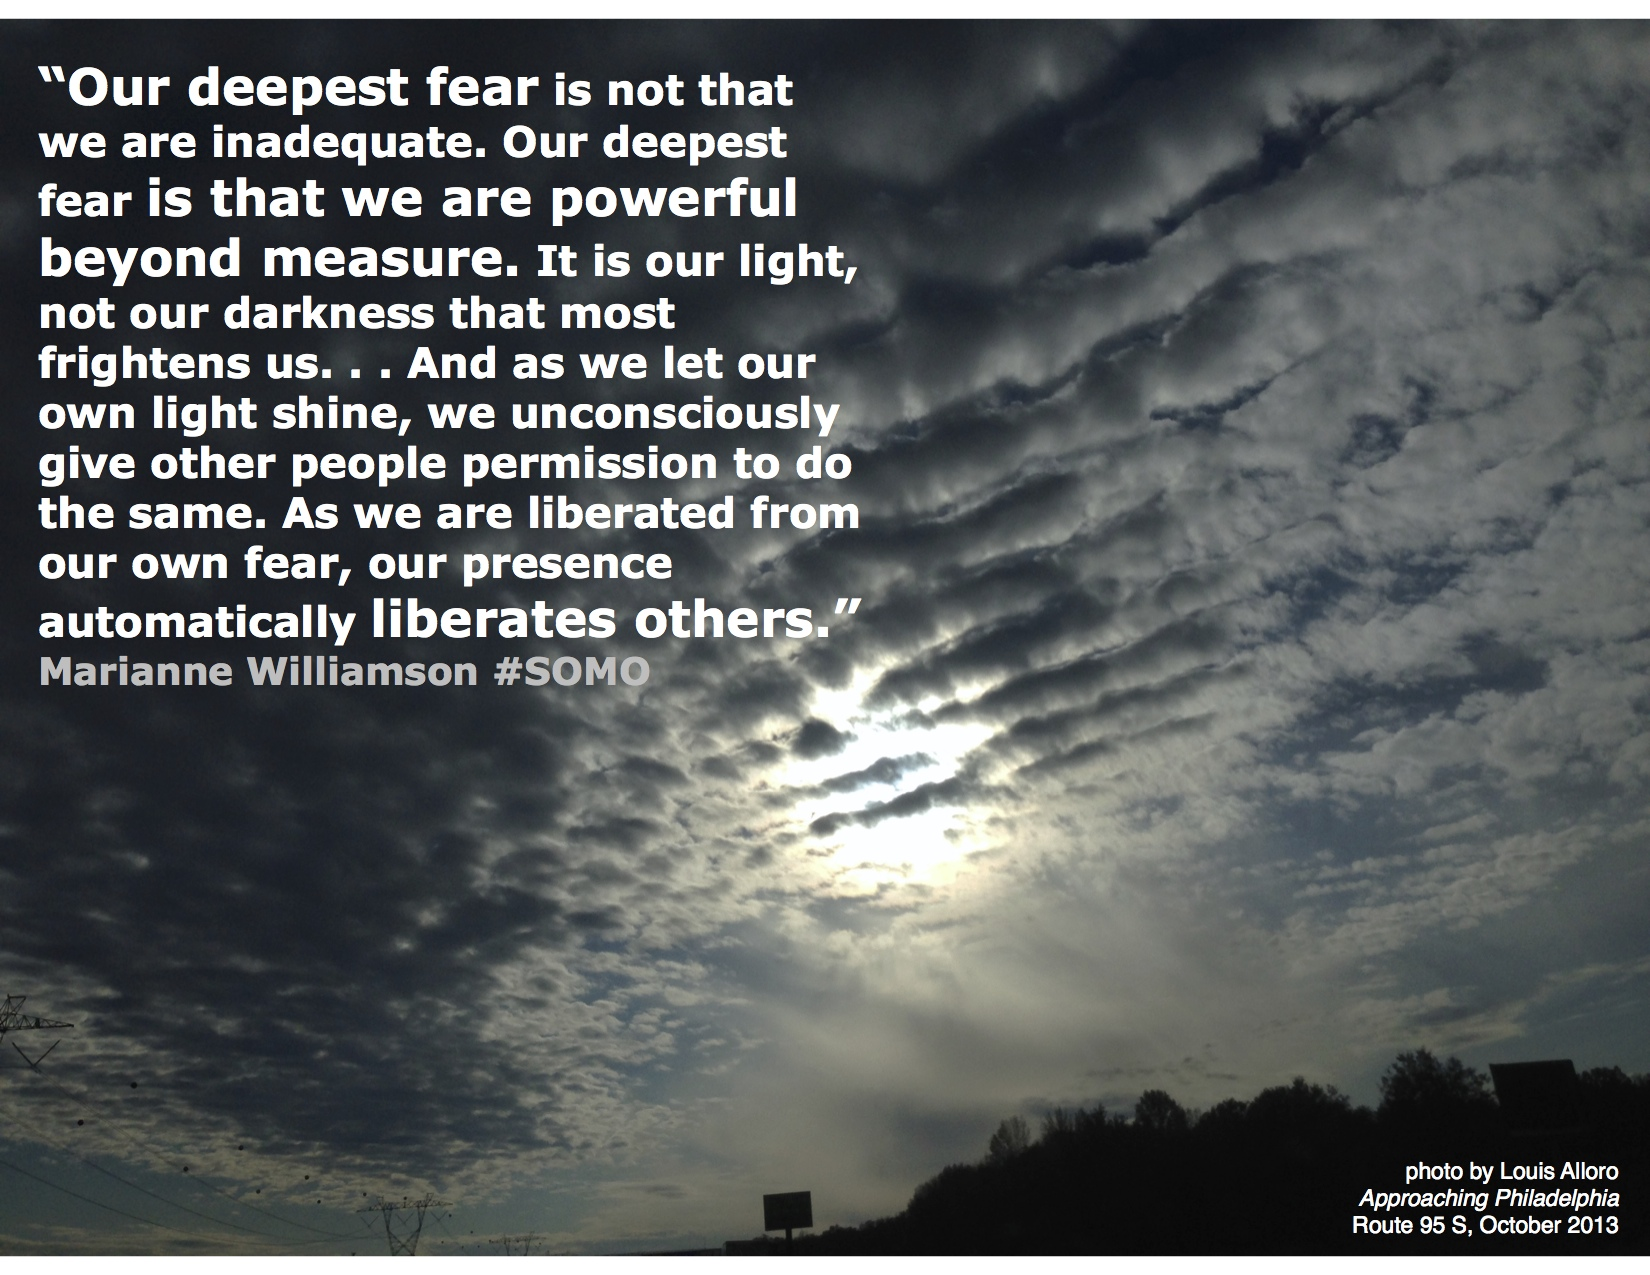 Our deepest fear somo